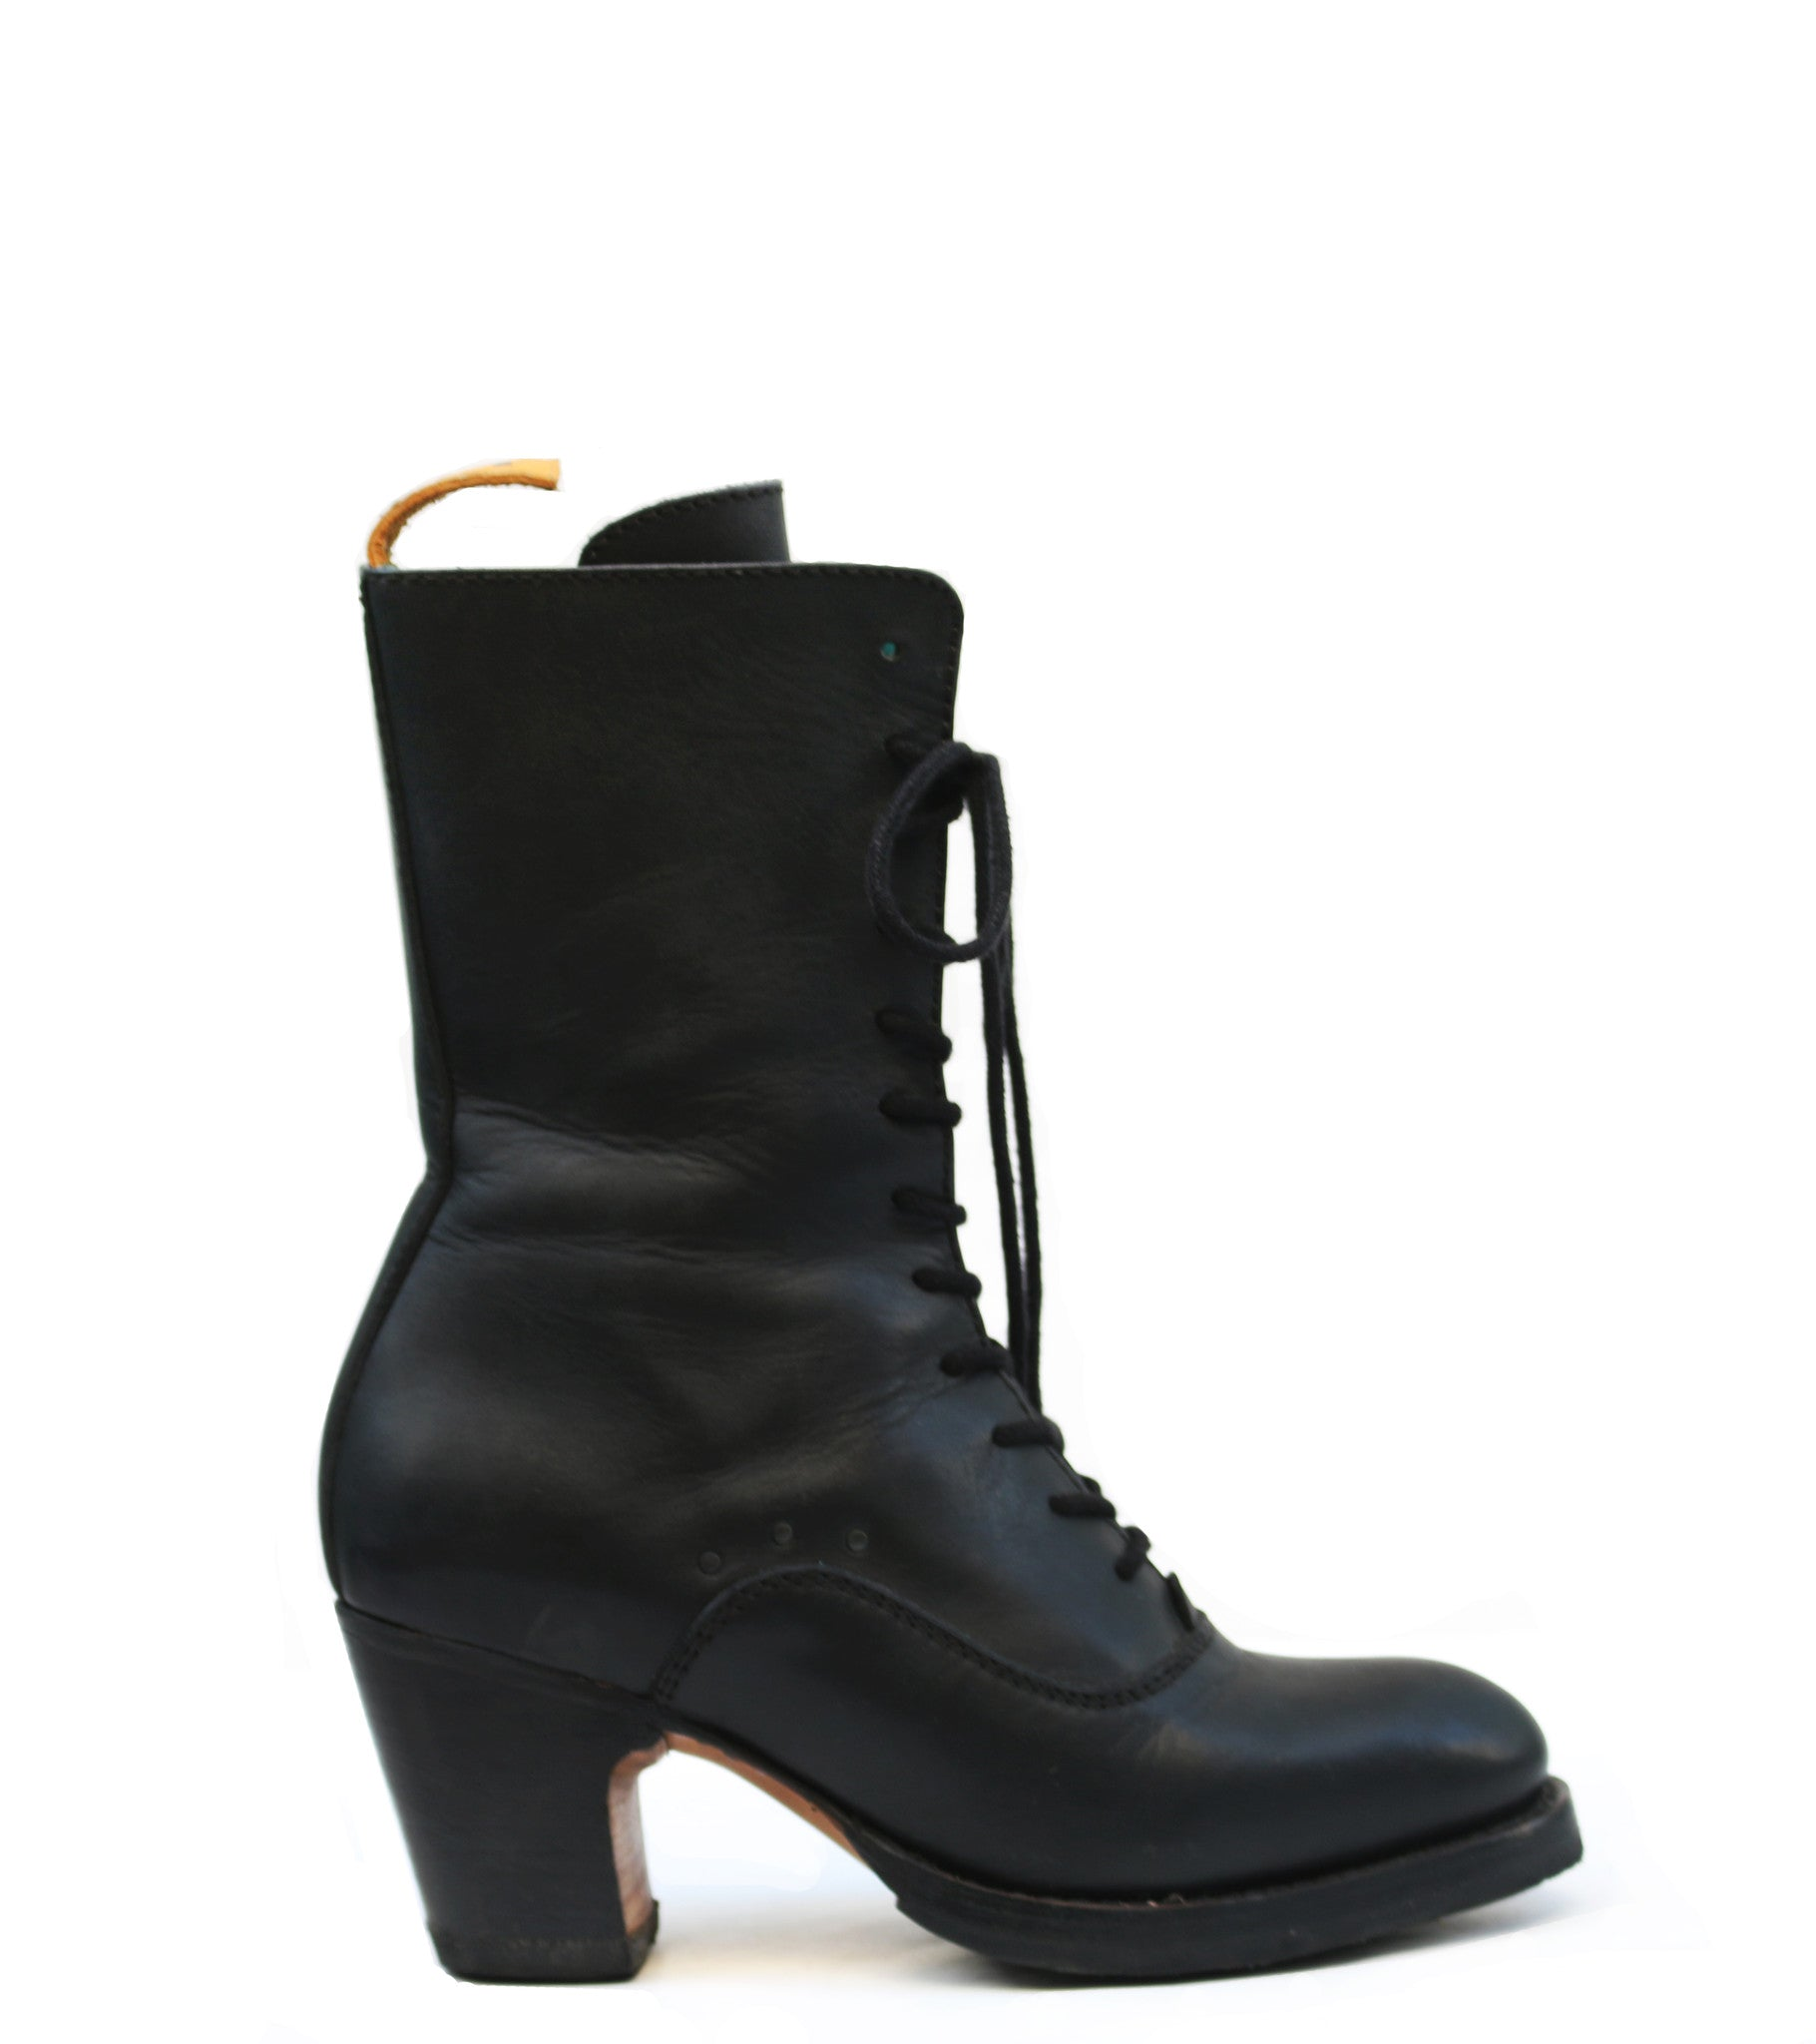 No.1018 CROSSWALK tall lace-up boot Sigil - pskaufmanfootwear